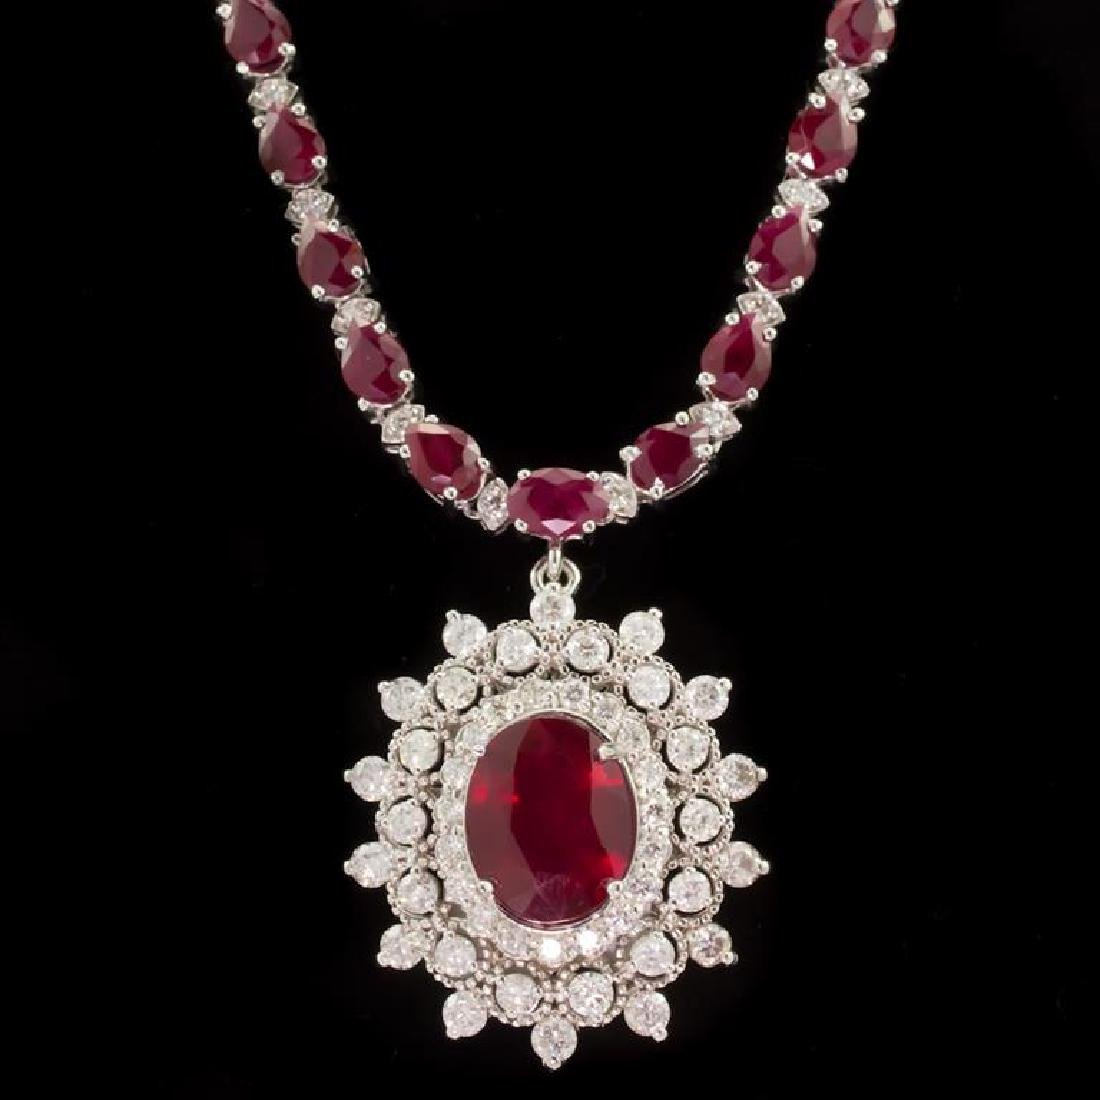 14k Gold 27.74ct Ruby 3.21ct Diamond Necklace